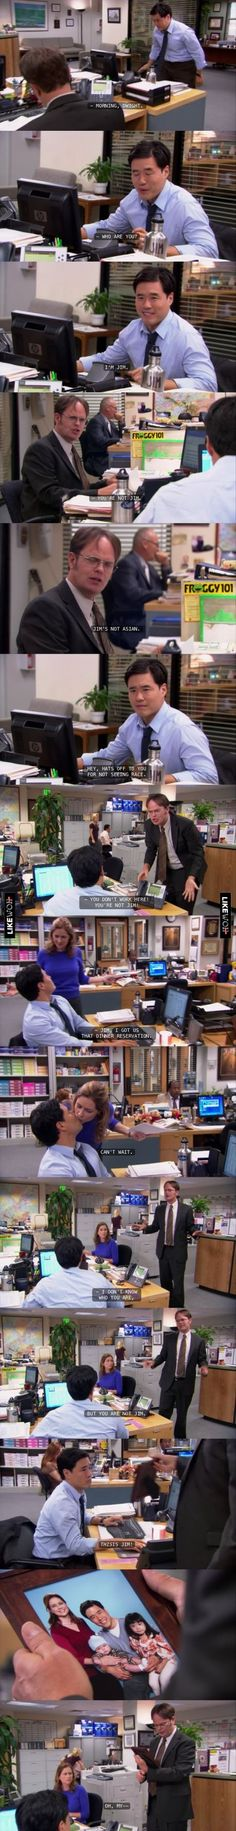 Jim and Pam's BEST Dwight prank.... I have never laughed harder watching this show!